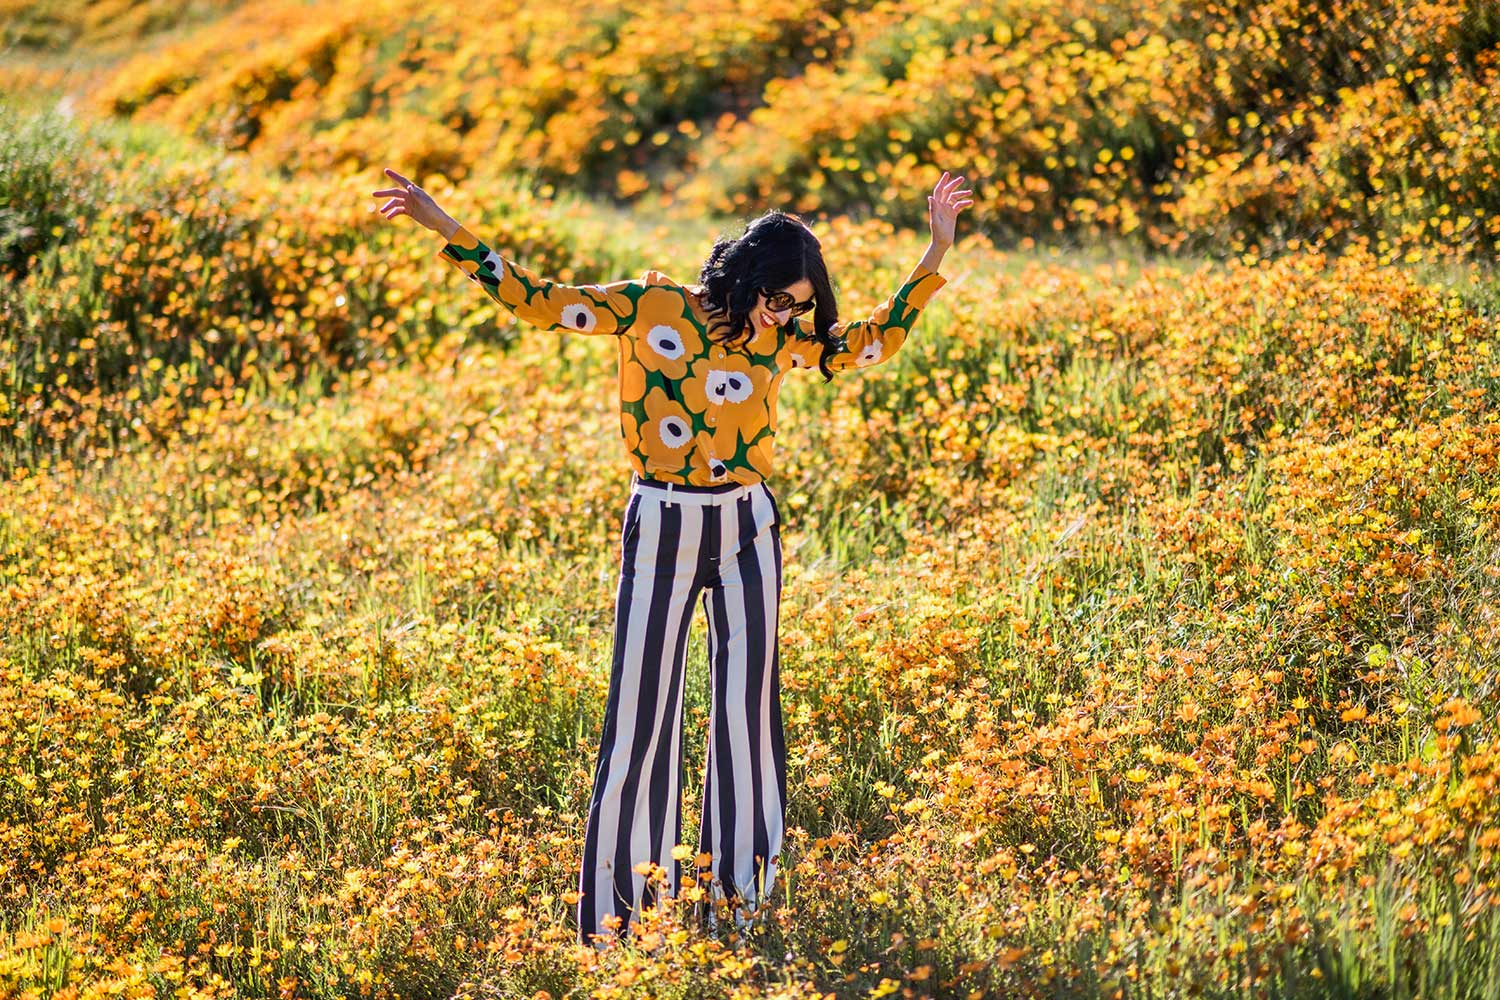 Jenna-Pilant-Style-Blogger-Lucky-Little-Mustardseed-Spring-Fashion-2017-Marimekko-Shirt-with-Alice-and-Olivia-Pants-1